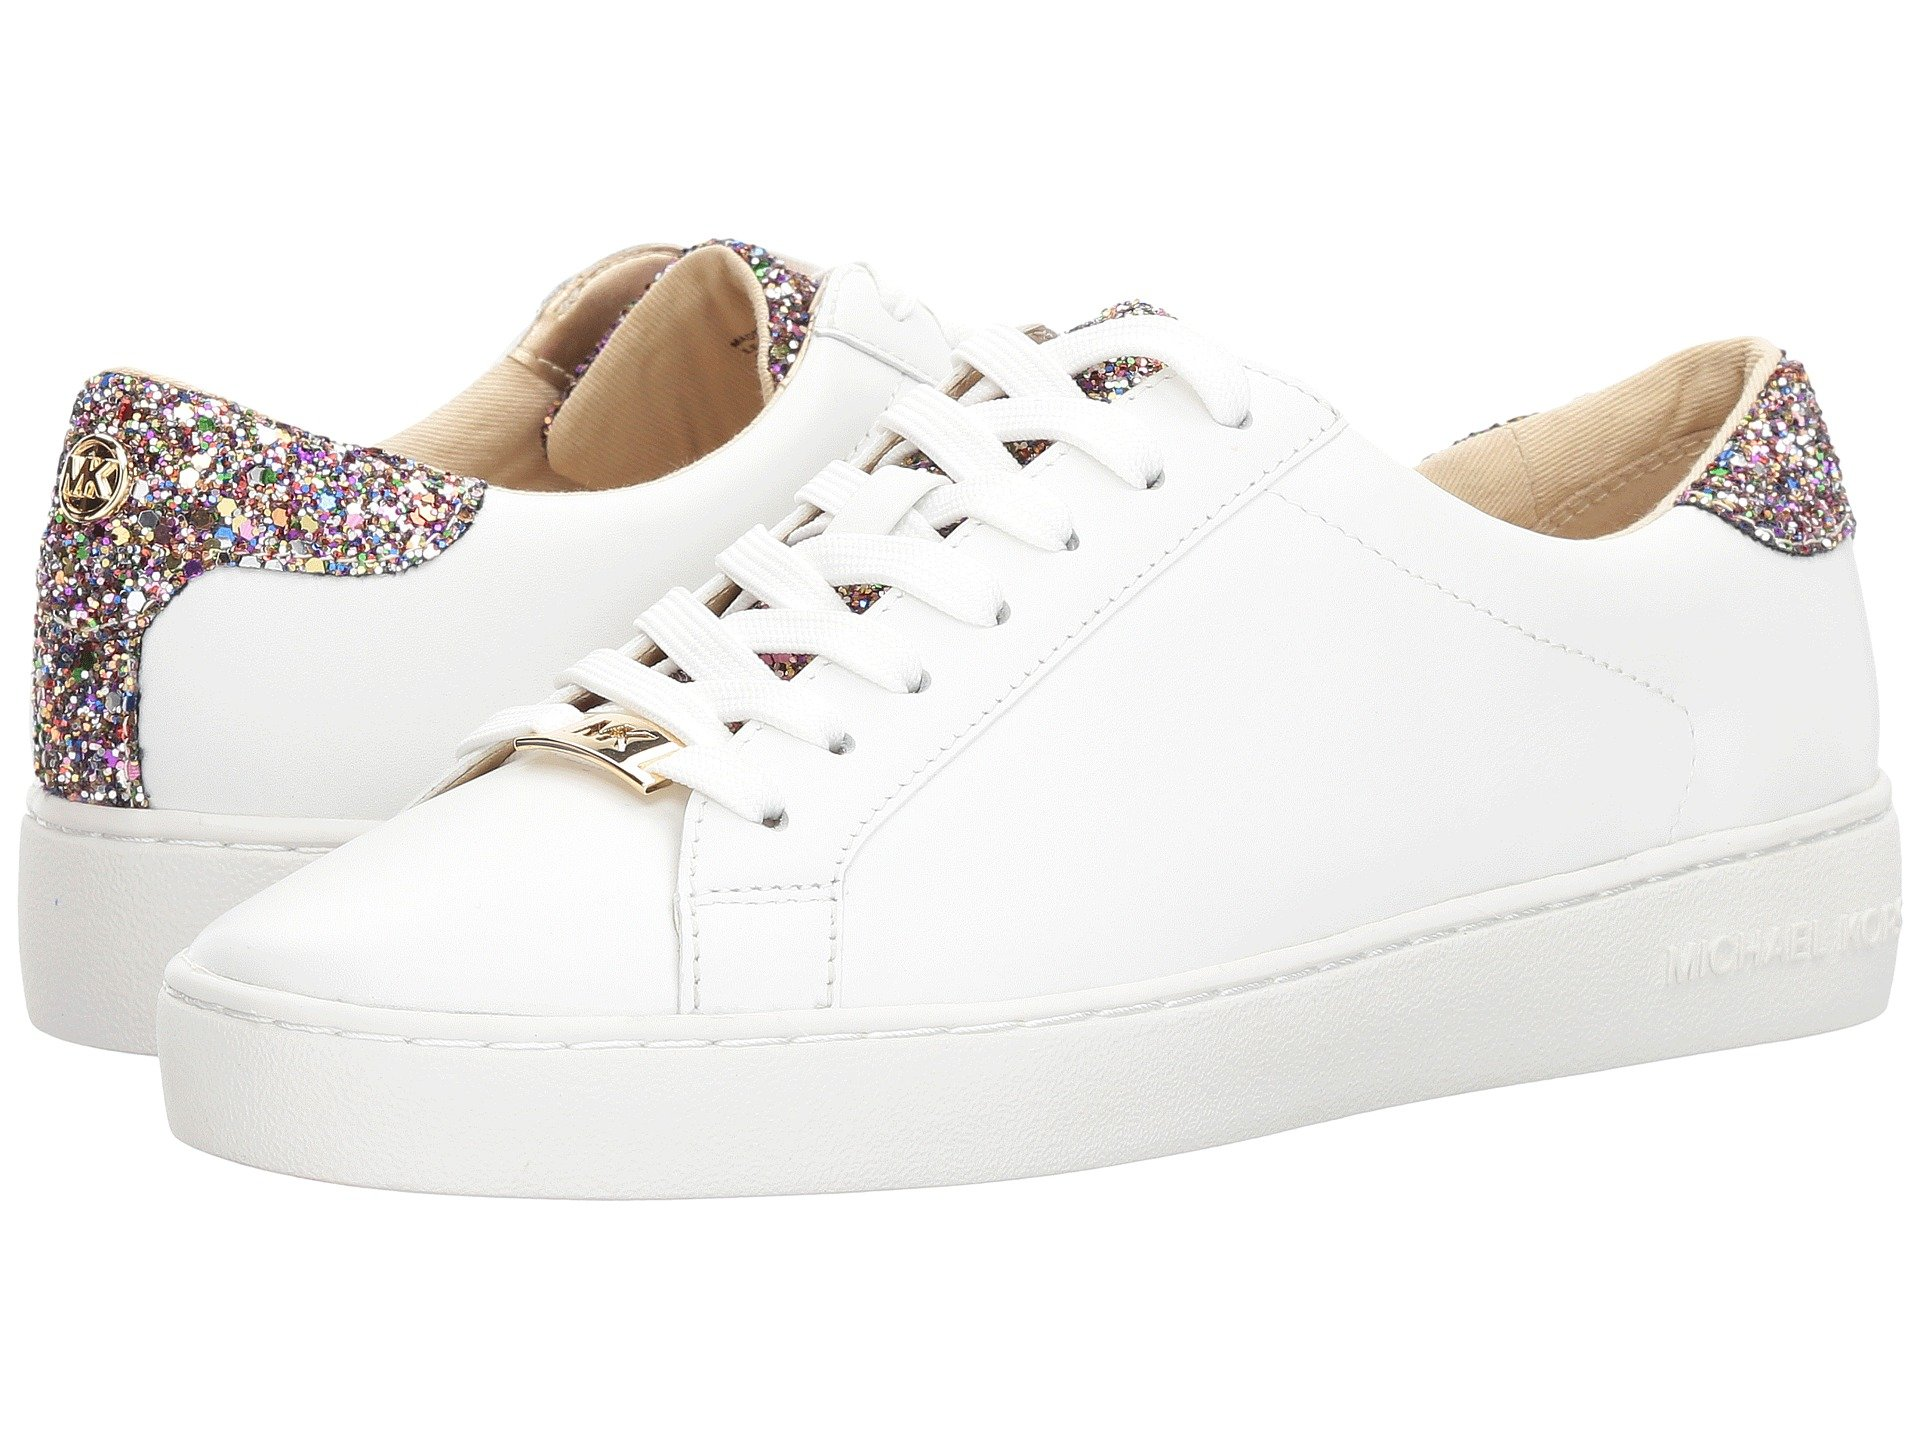 Michael Michael Kors Irving Lace Up In Optic White Multi Vachetta Chunky  Glitter 4a8c8d9de